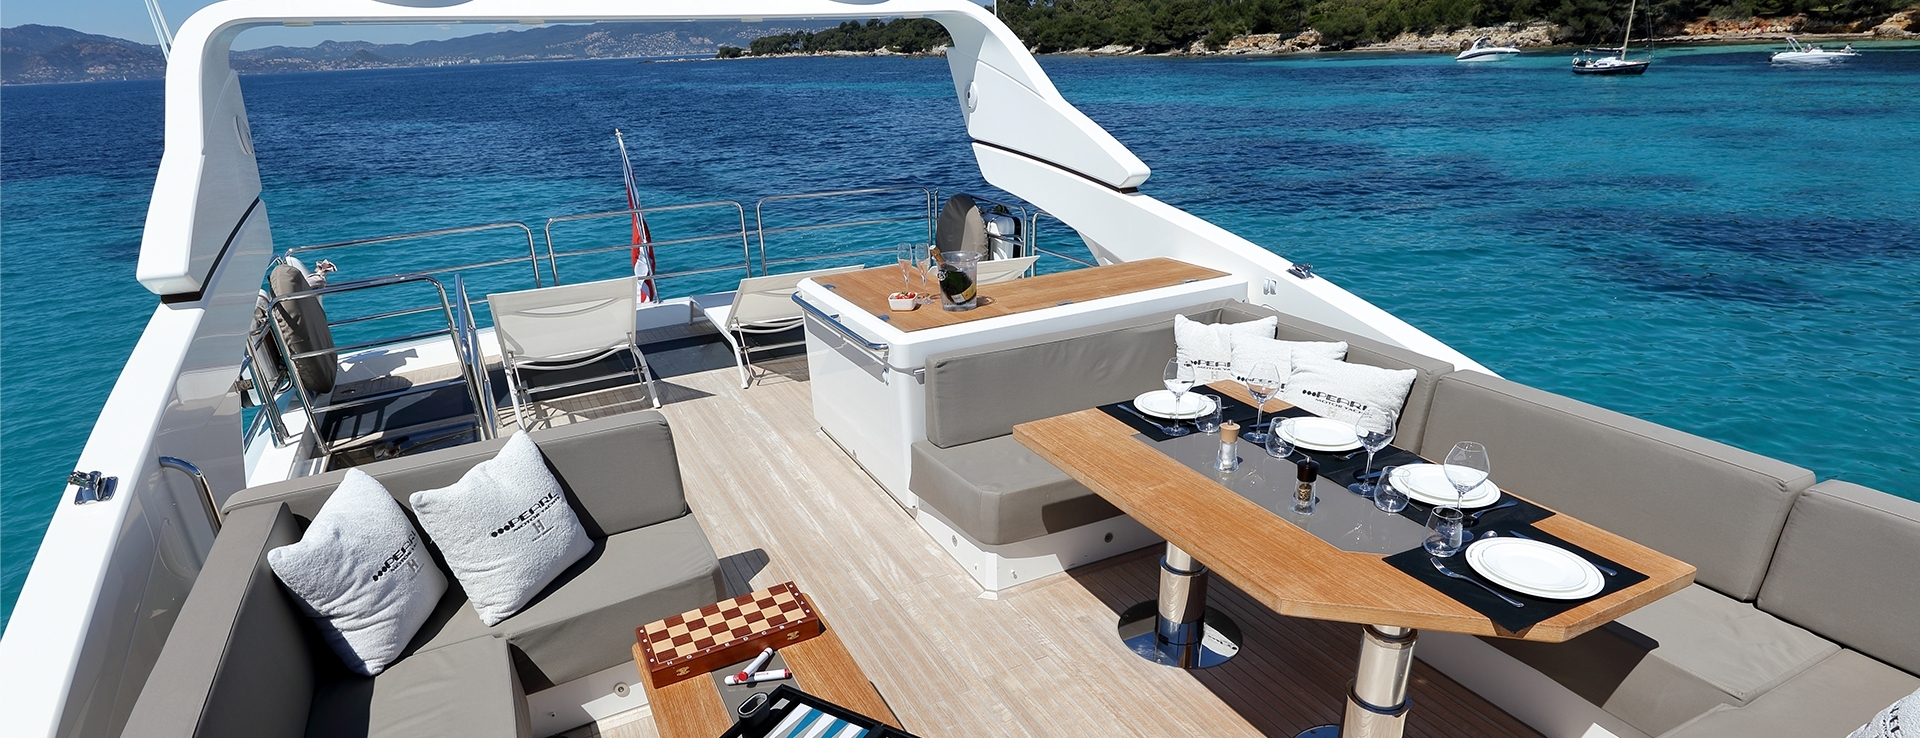 Yacht Summer Breeze 1 10